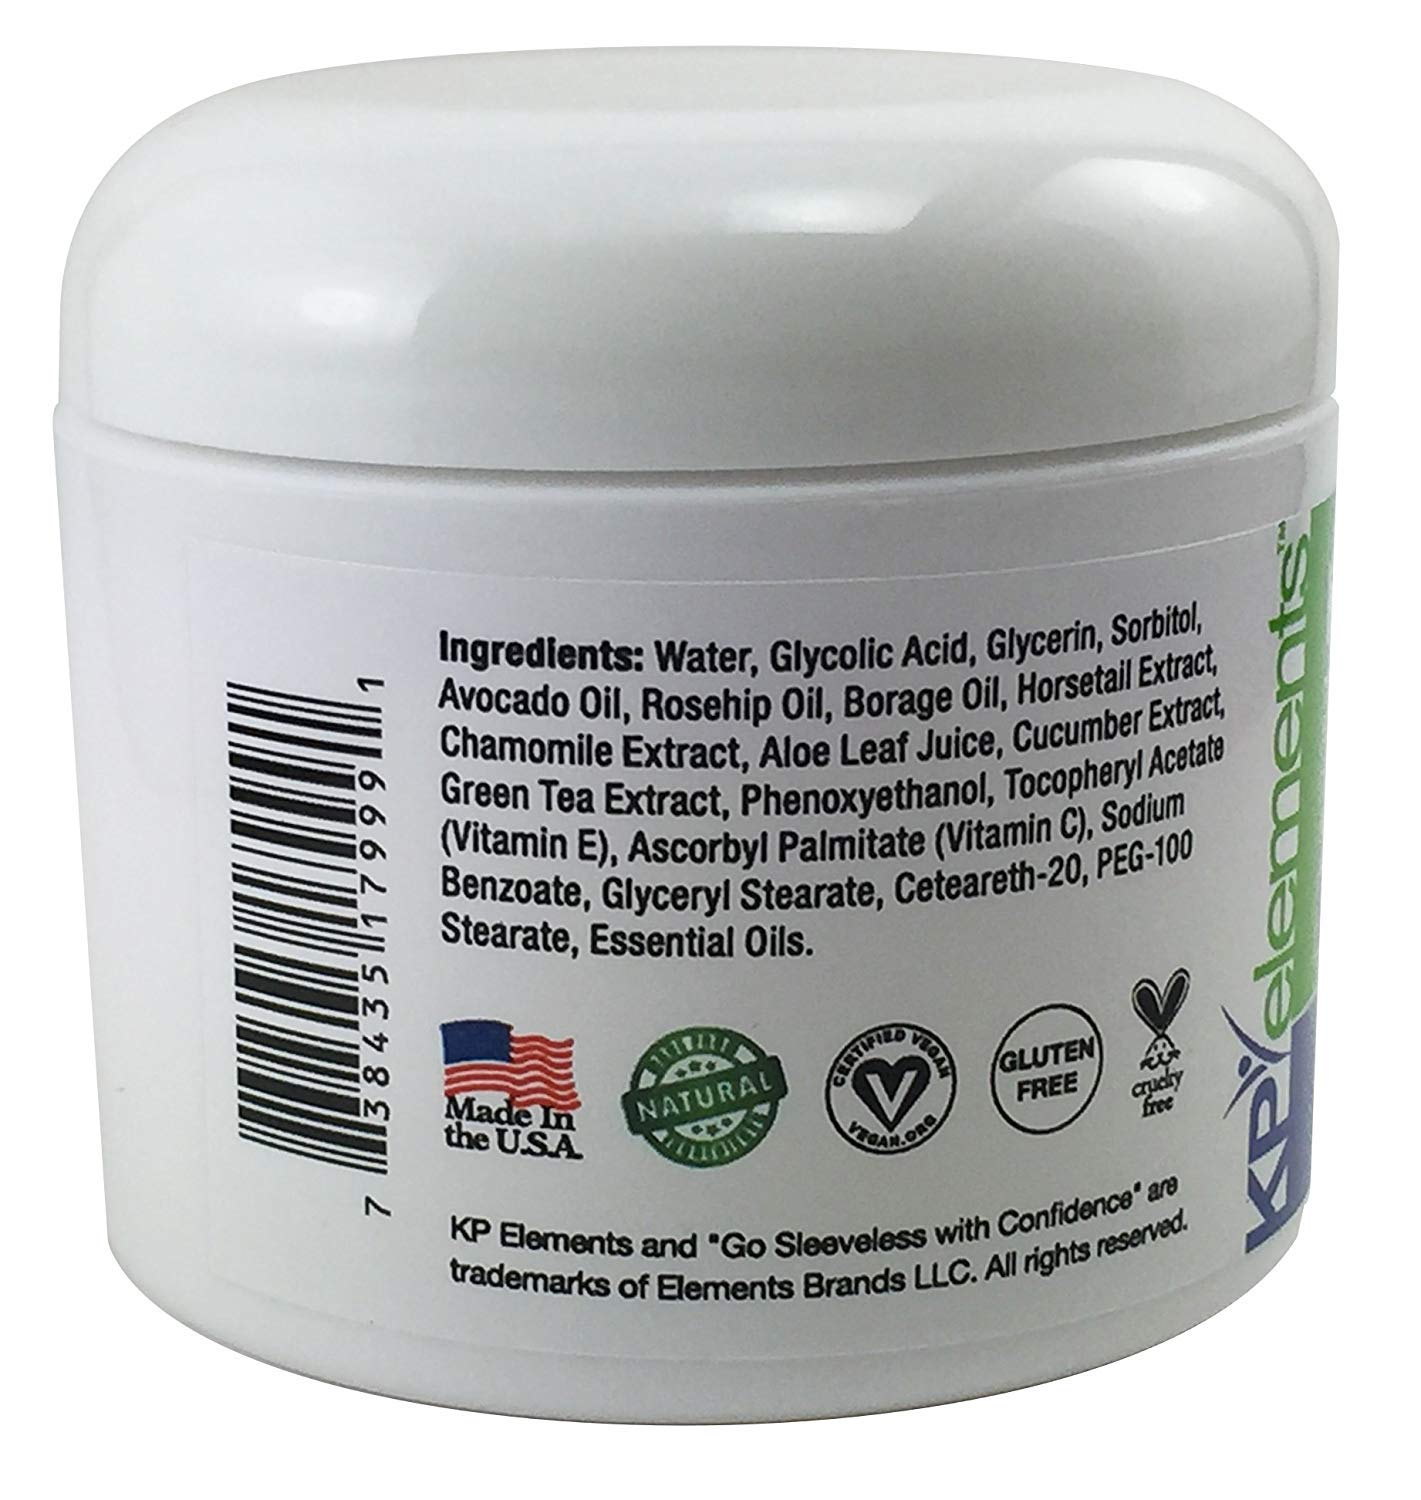 KP Elements Keratosis Pilaris Exfoliating Skin Cream Treatment, 4 fl oz. each, 2 Pack - All-Natural, Soothing, Healing Ingredients by KP Elements (Image #7)